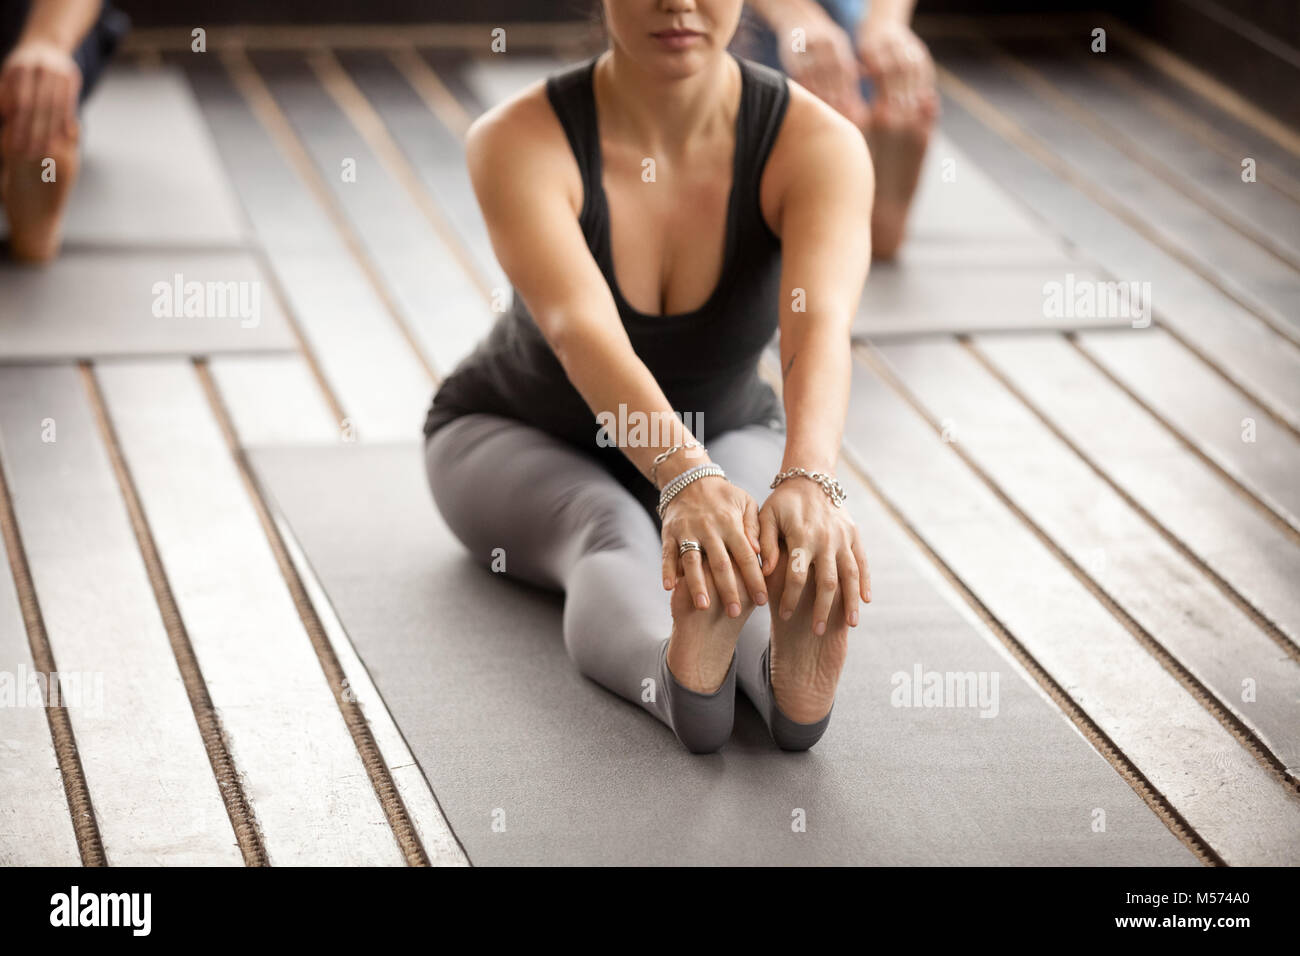 Young sporty woman in paschimottanasana pose - Stock Image